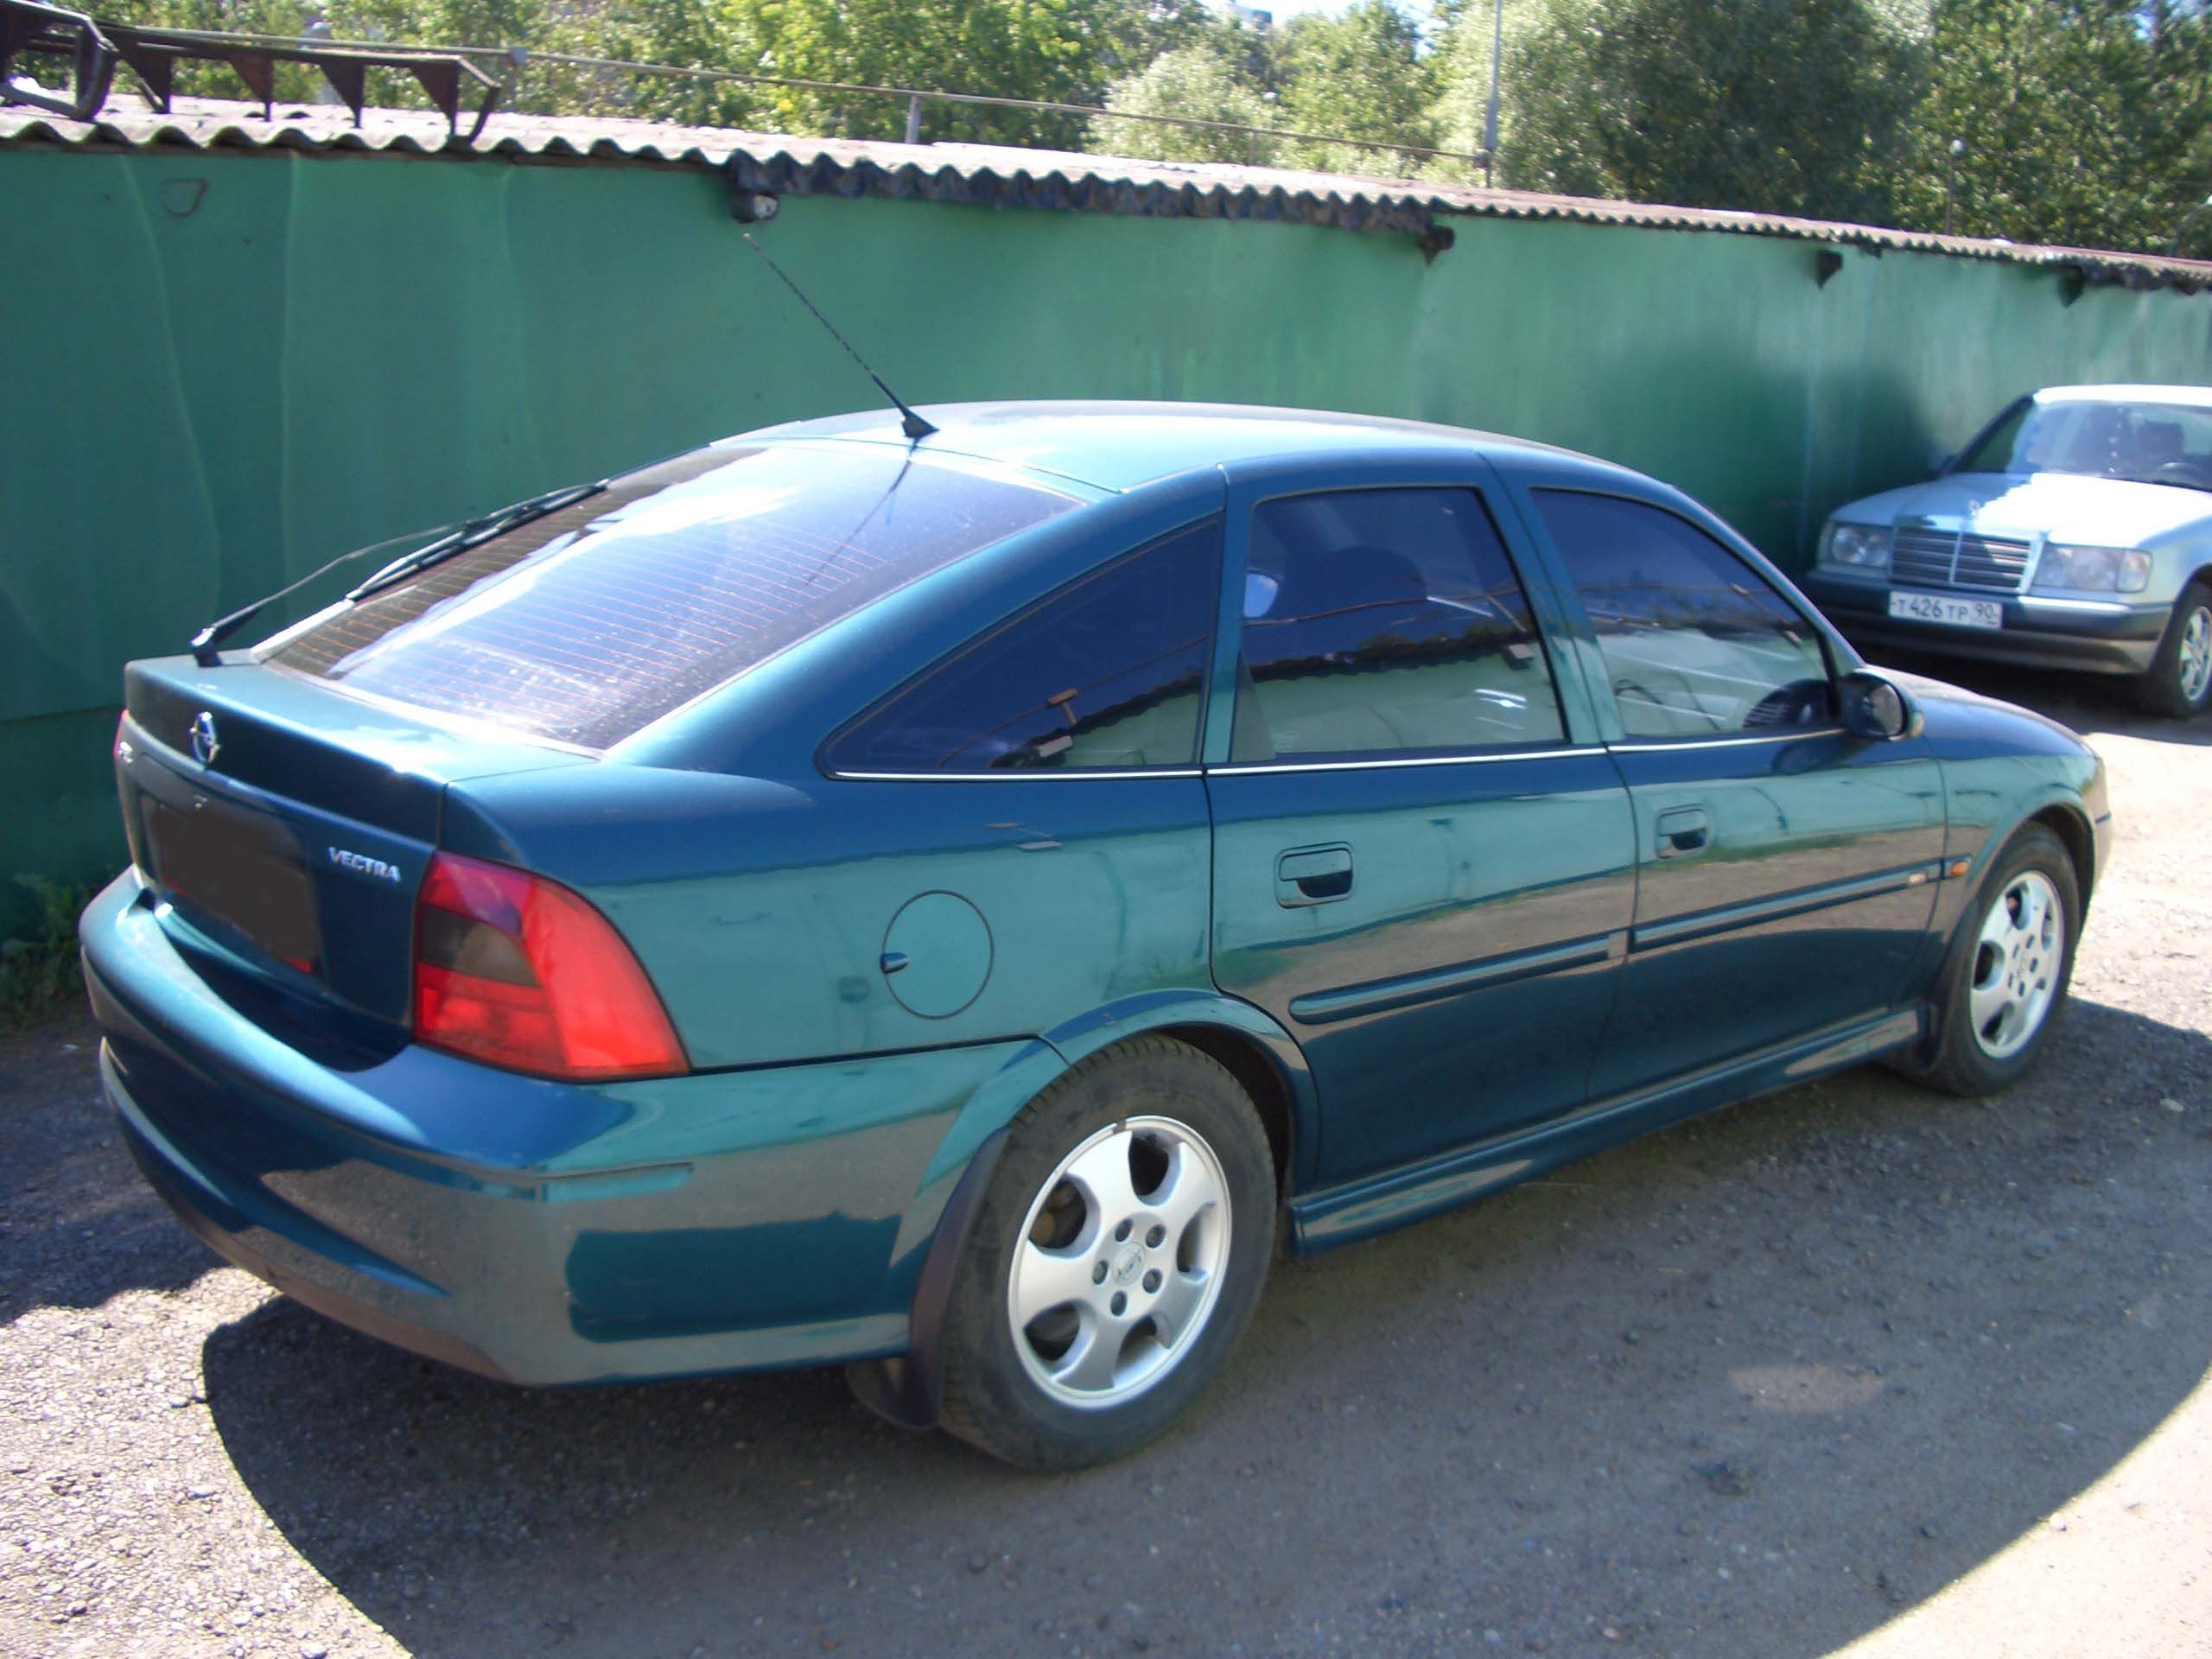 2000 opel vectra pictures 1600cc gasoline ff manual for sale rh cars directory net Opel Astra 2000 opel vectra b 2000 user manual